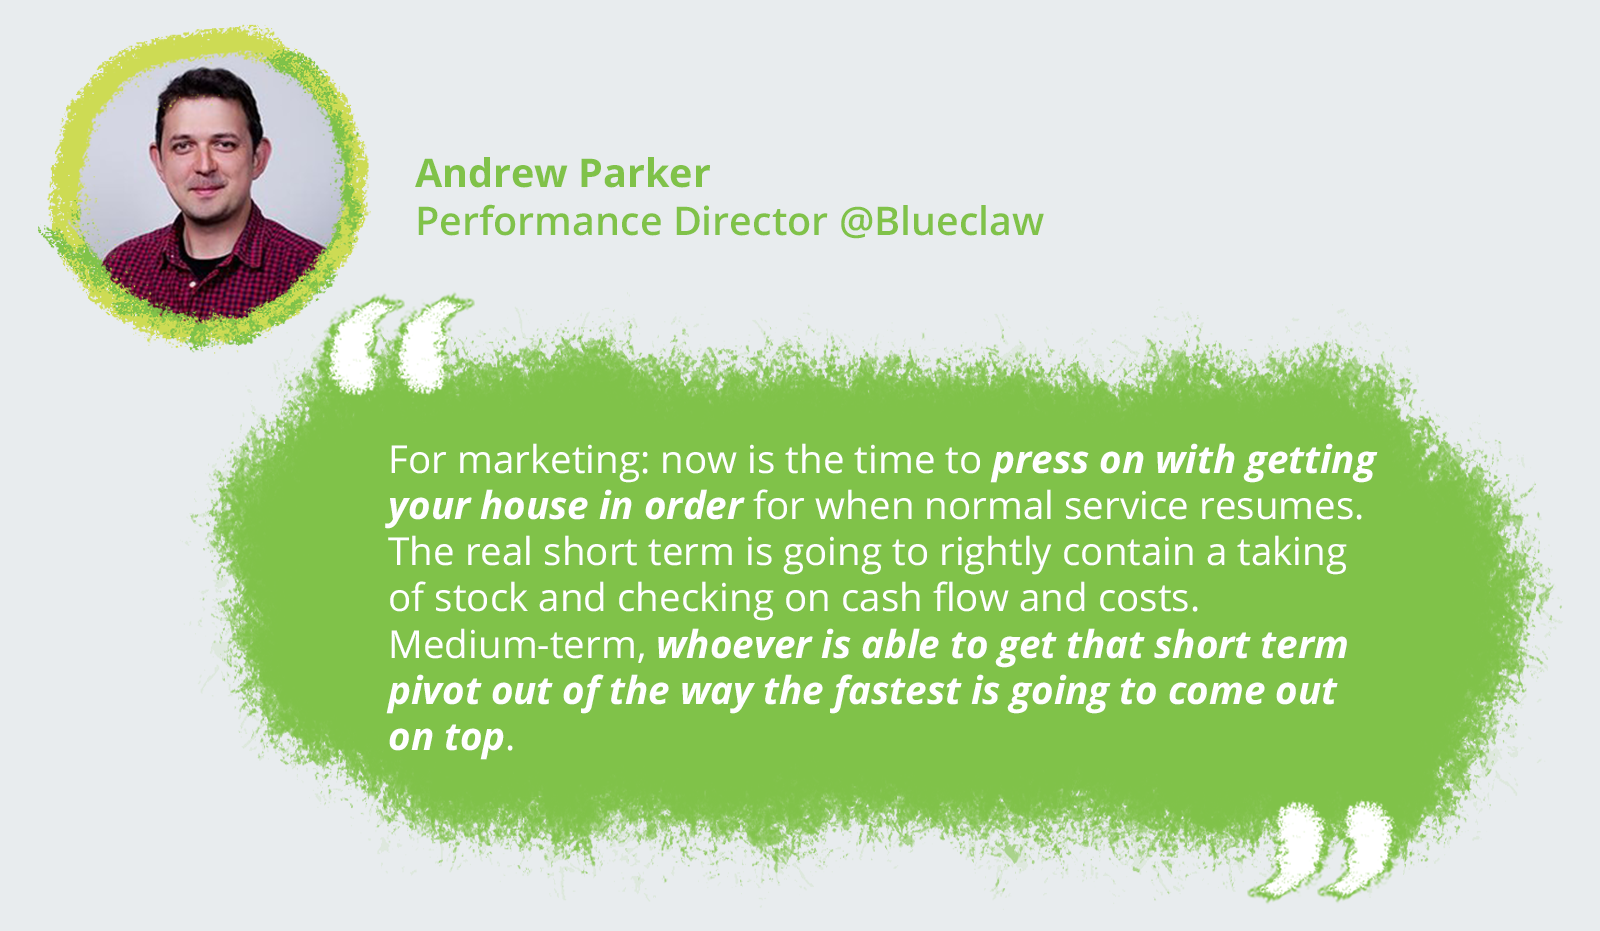 Andrew Parker, Performance Director @Blueclaw